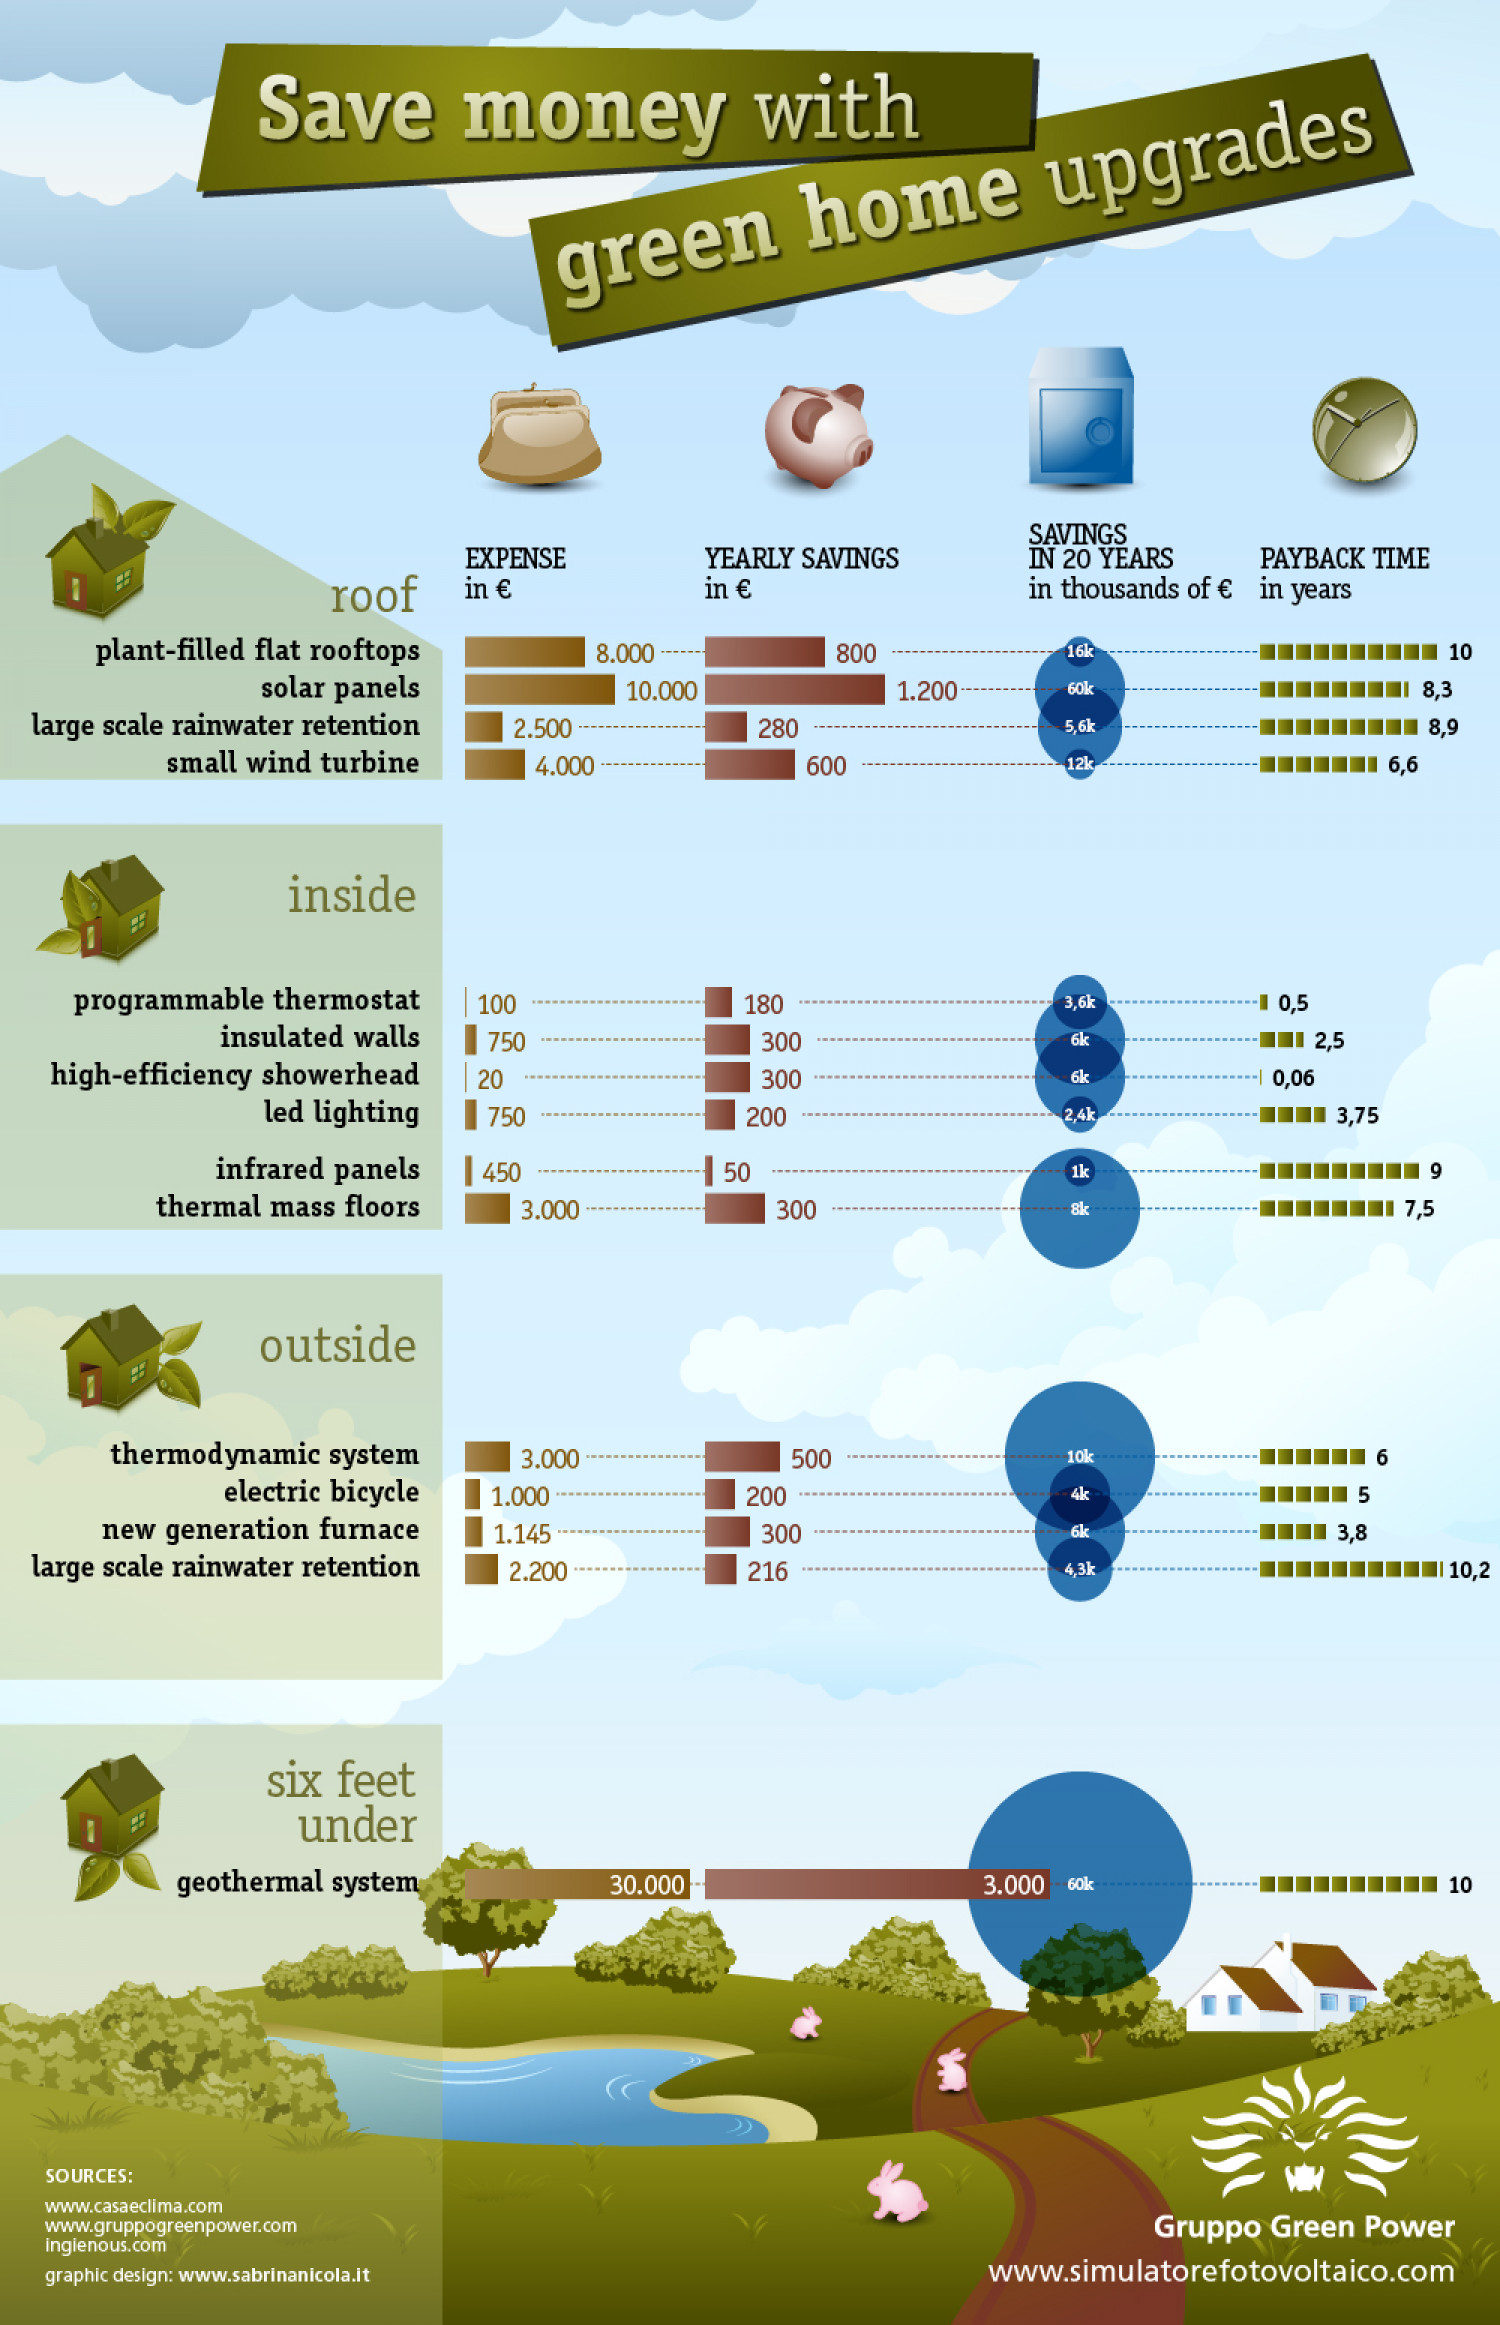 Save Money with Green Home Upgrades Infographic